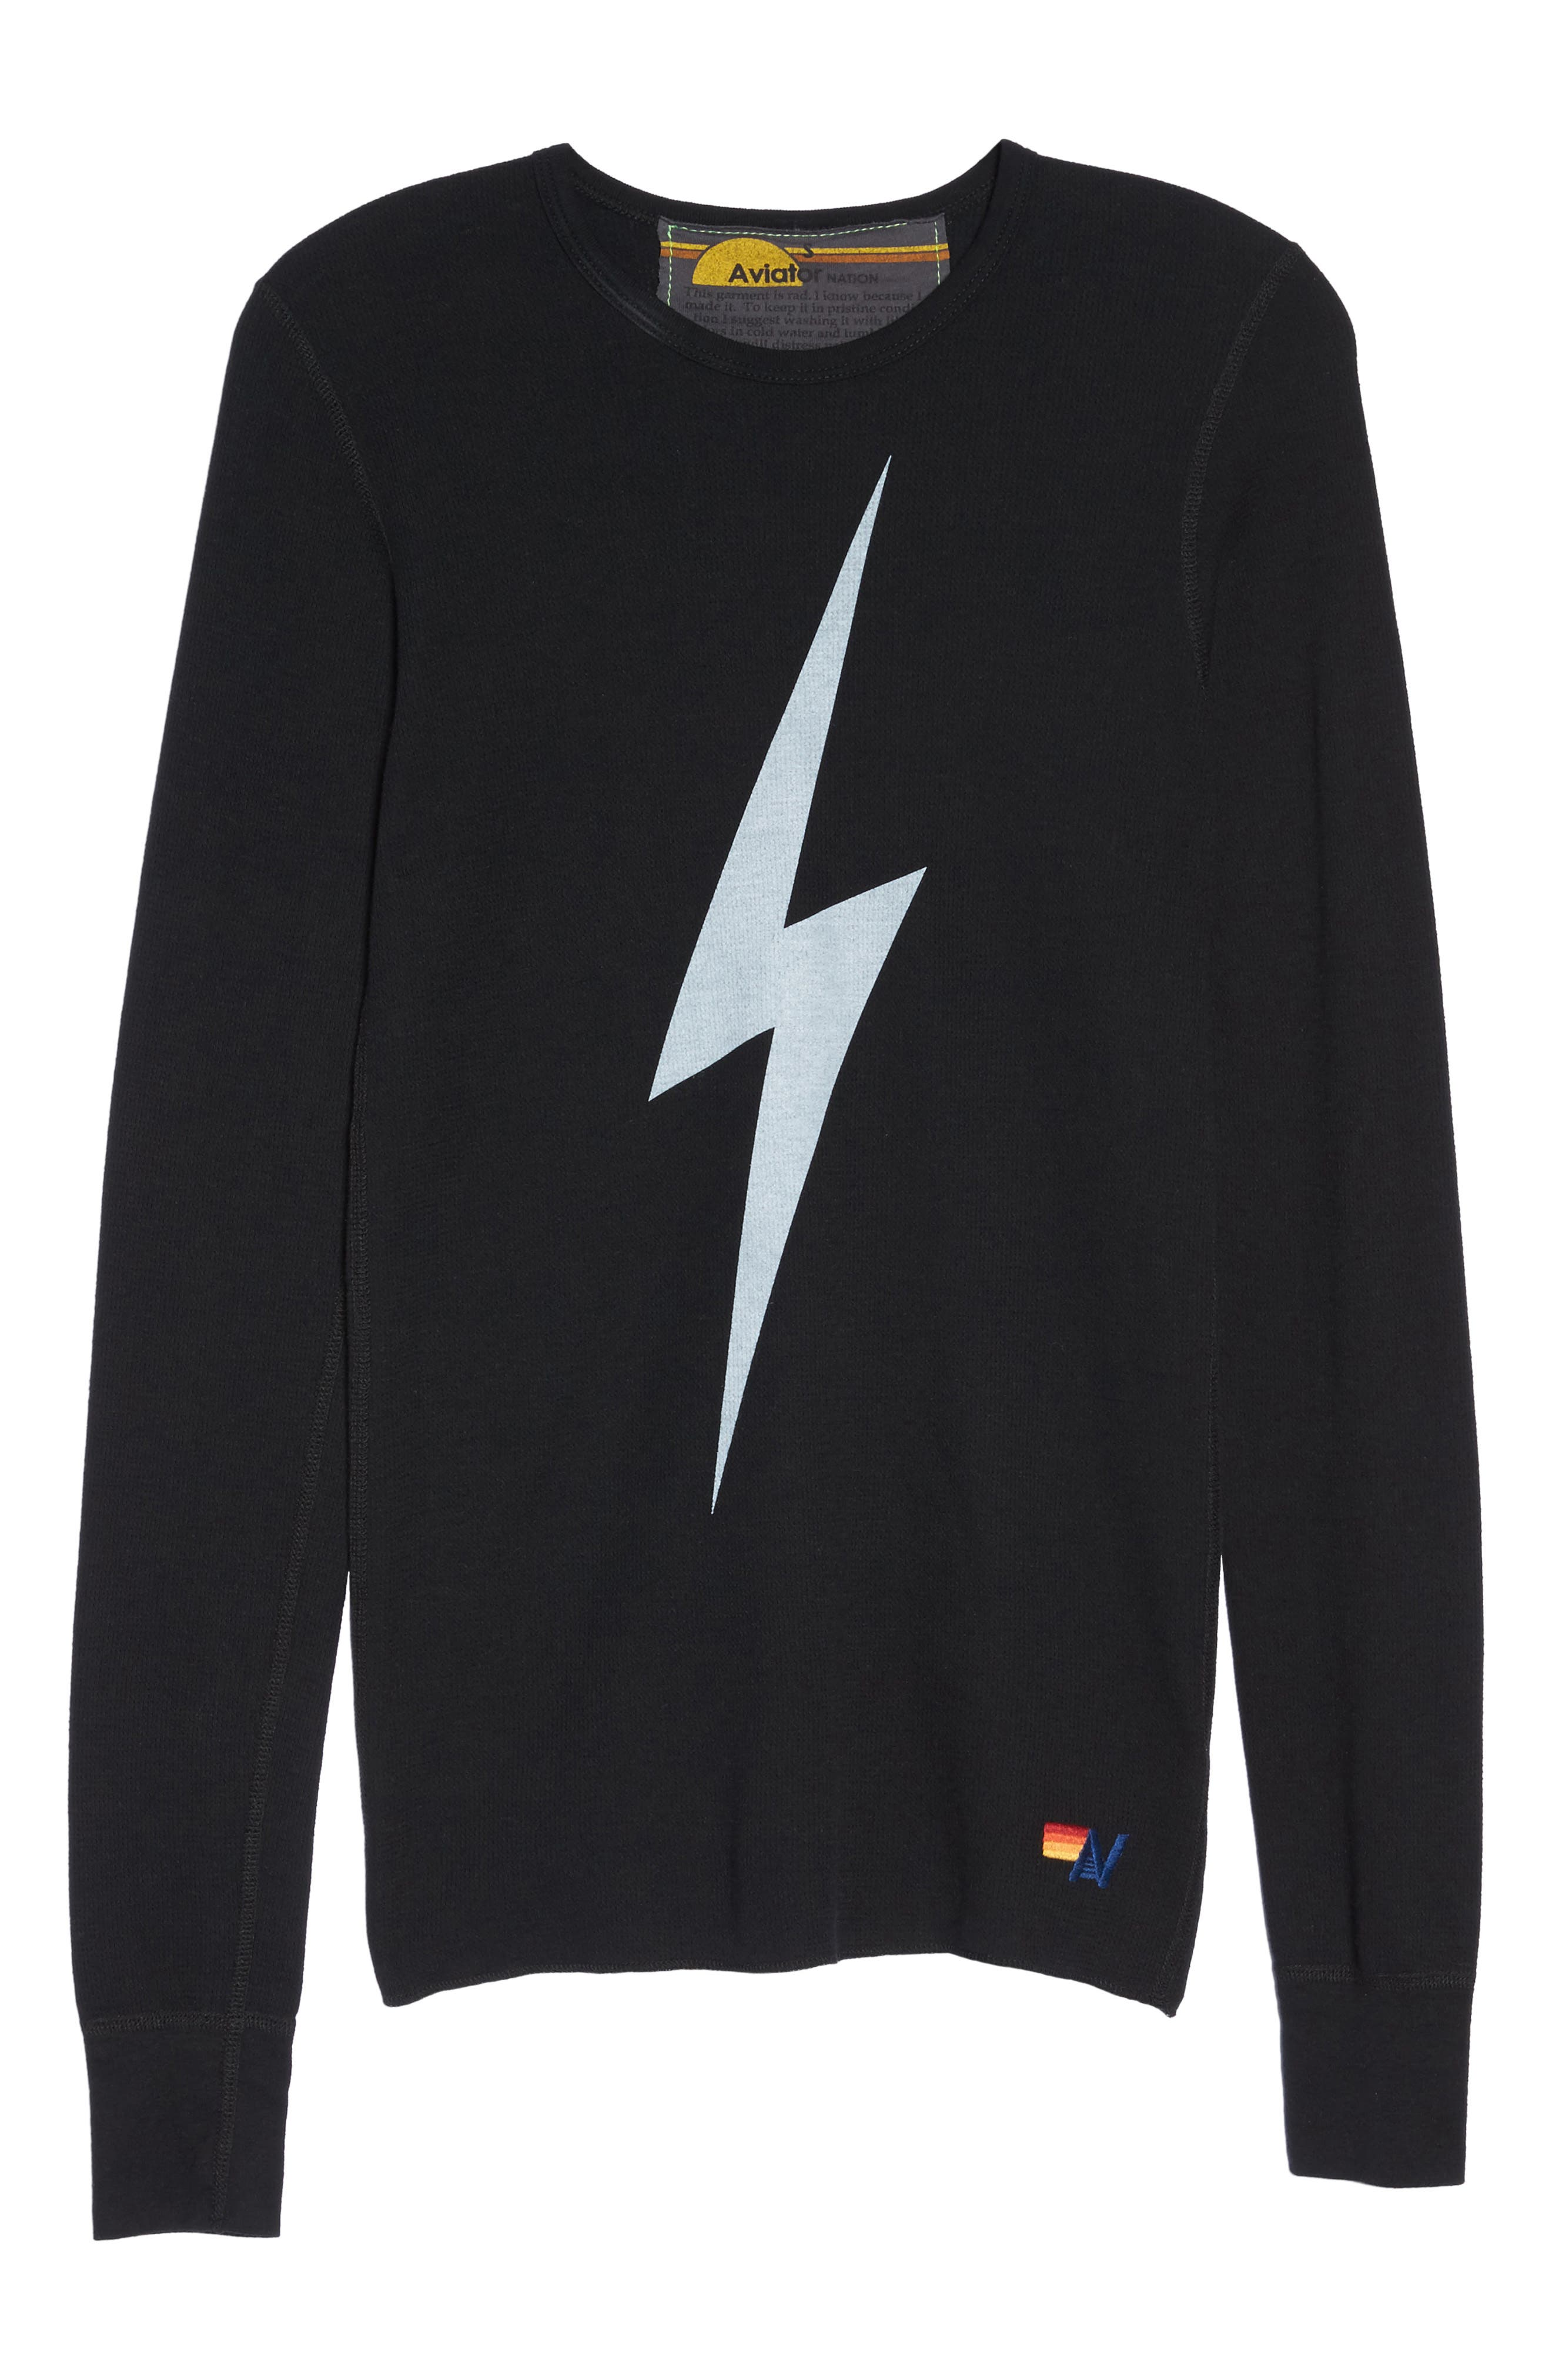 Bolt Thermal Top,                             Alternate thumbnail 7, color,                             030